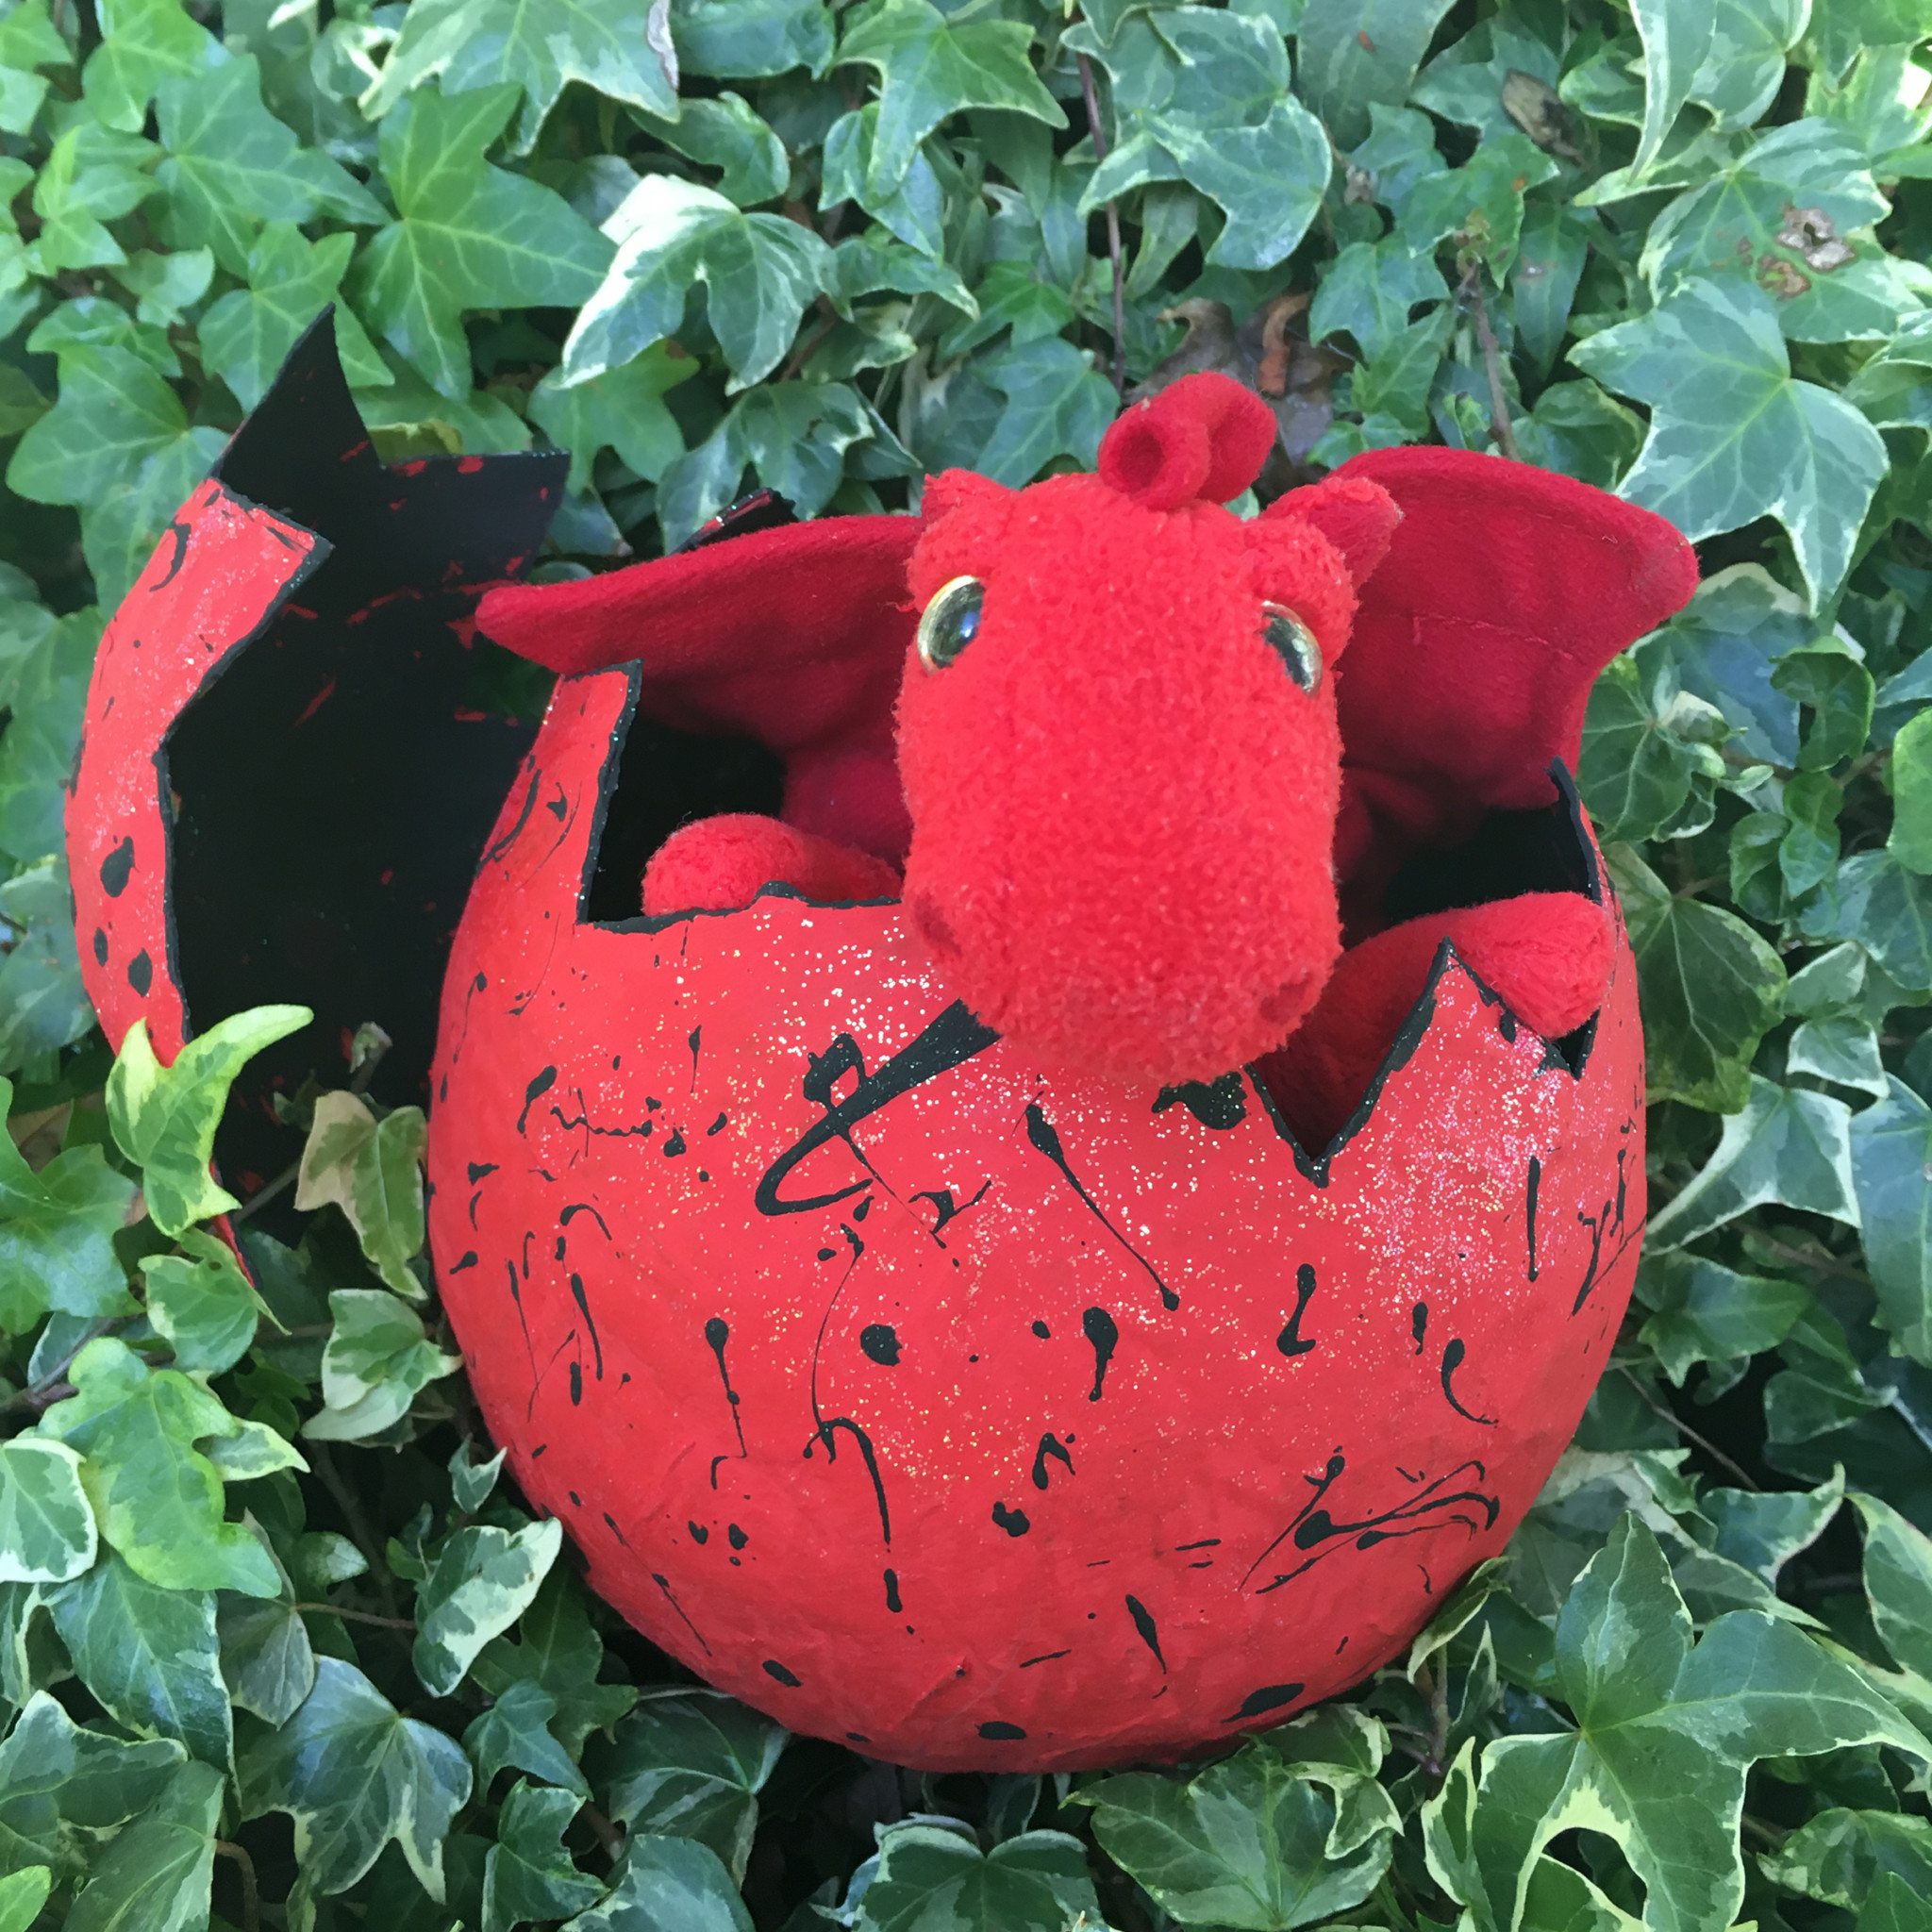 papier mache Dragon Egg by Lottie Makes